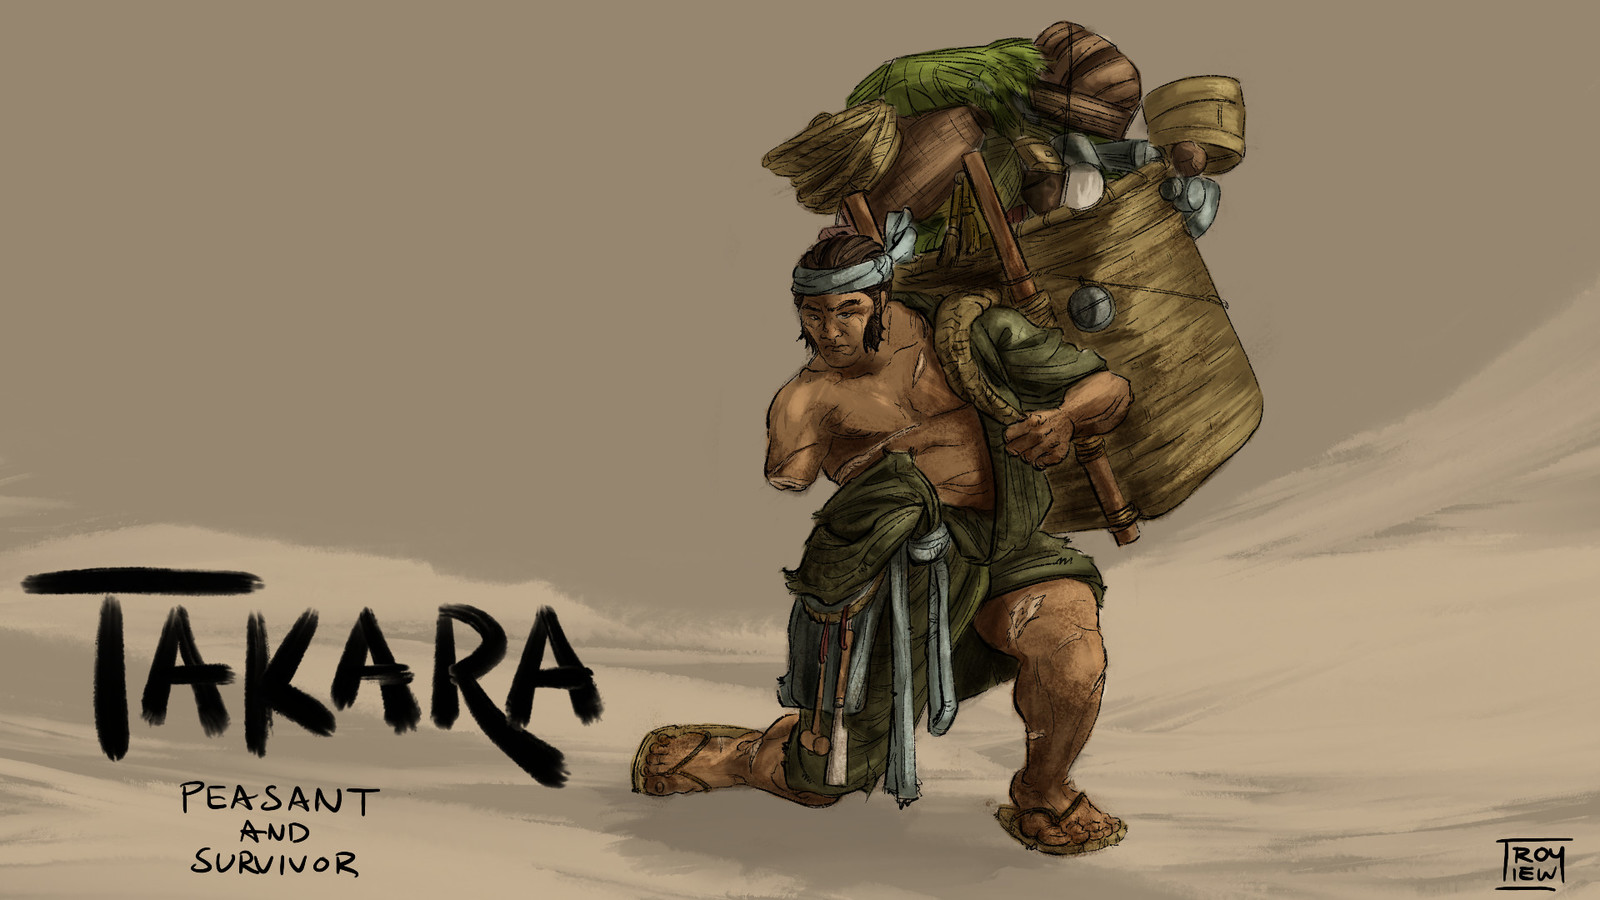 A hard life was promised and delivered for Takara. As a peasant, this was already the norm, but adding to the struggle was a past life invested in a failed revolution. Much has been lost, but much can also be endured.